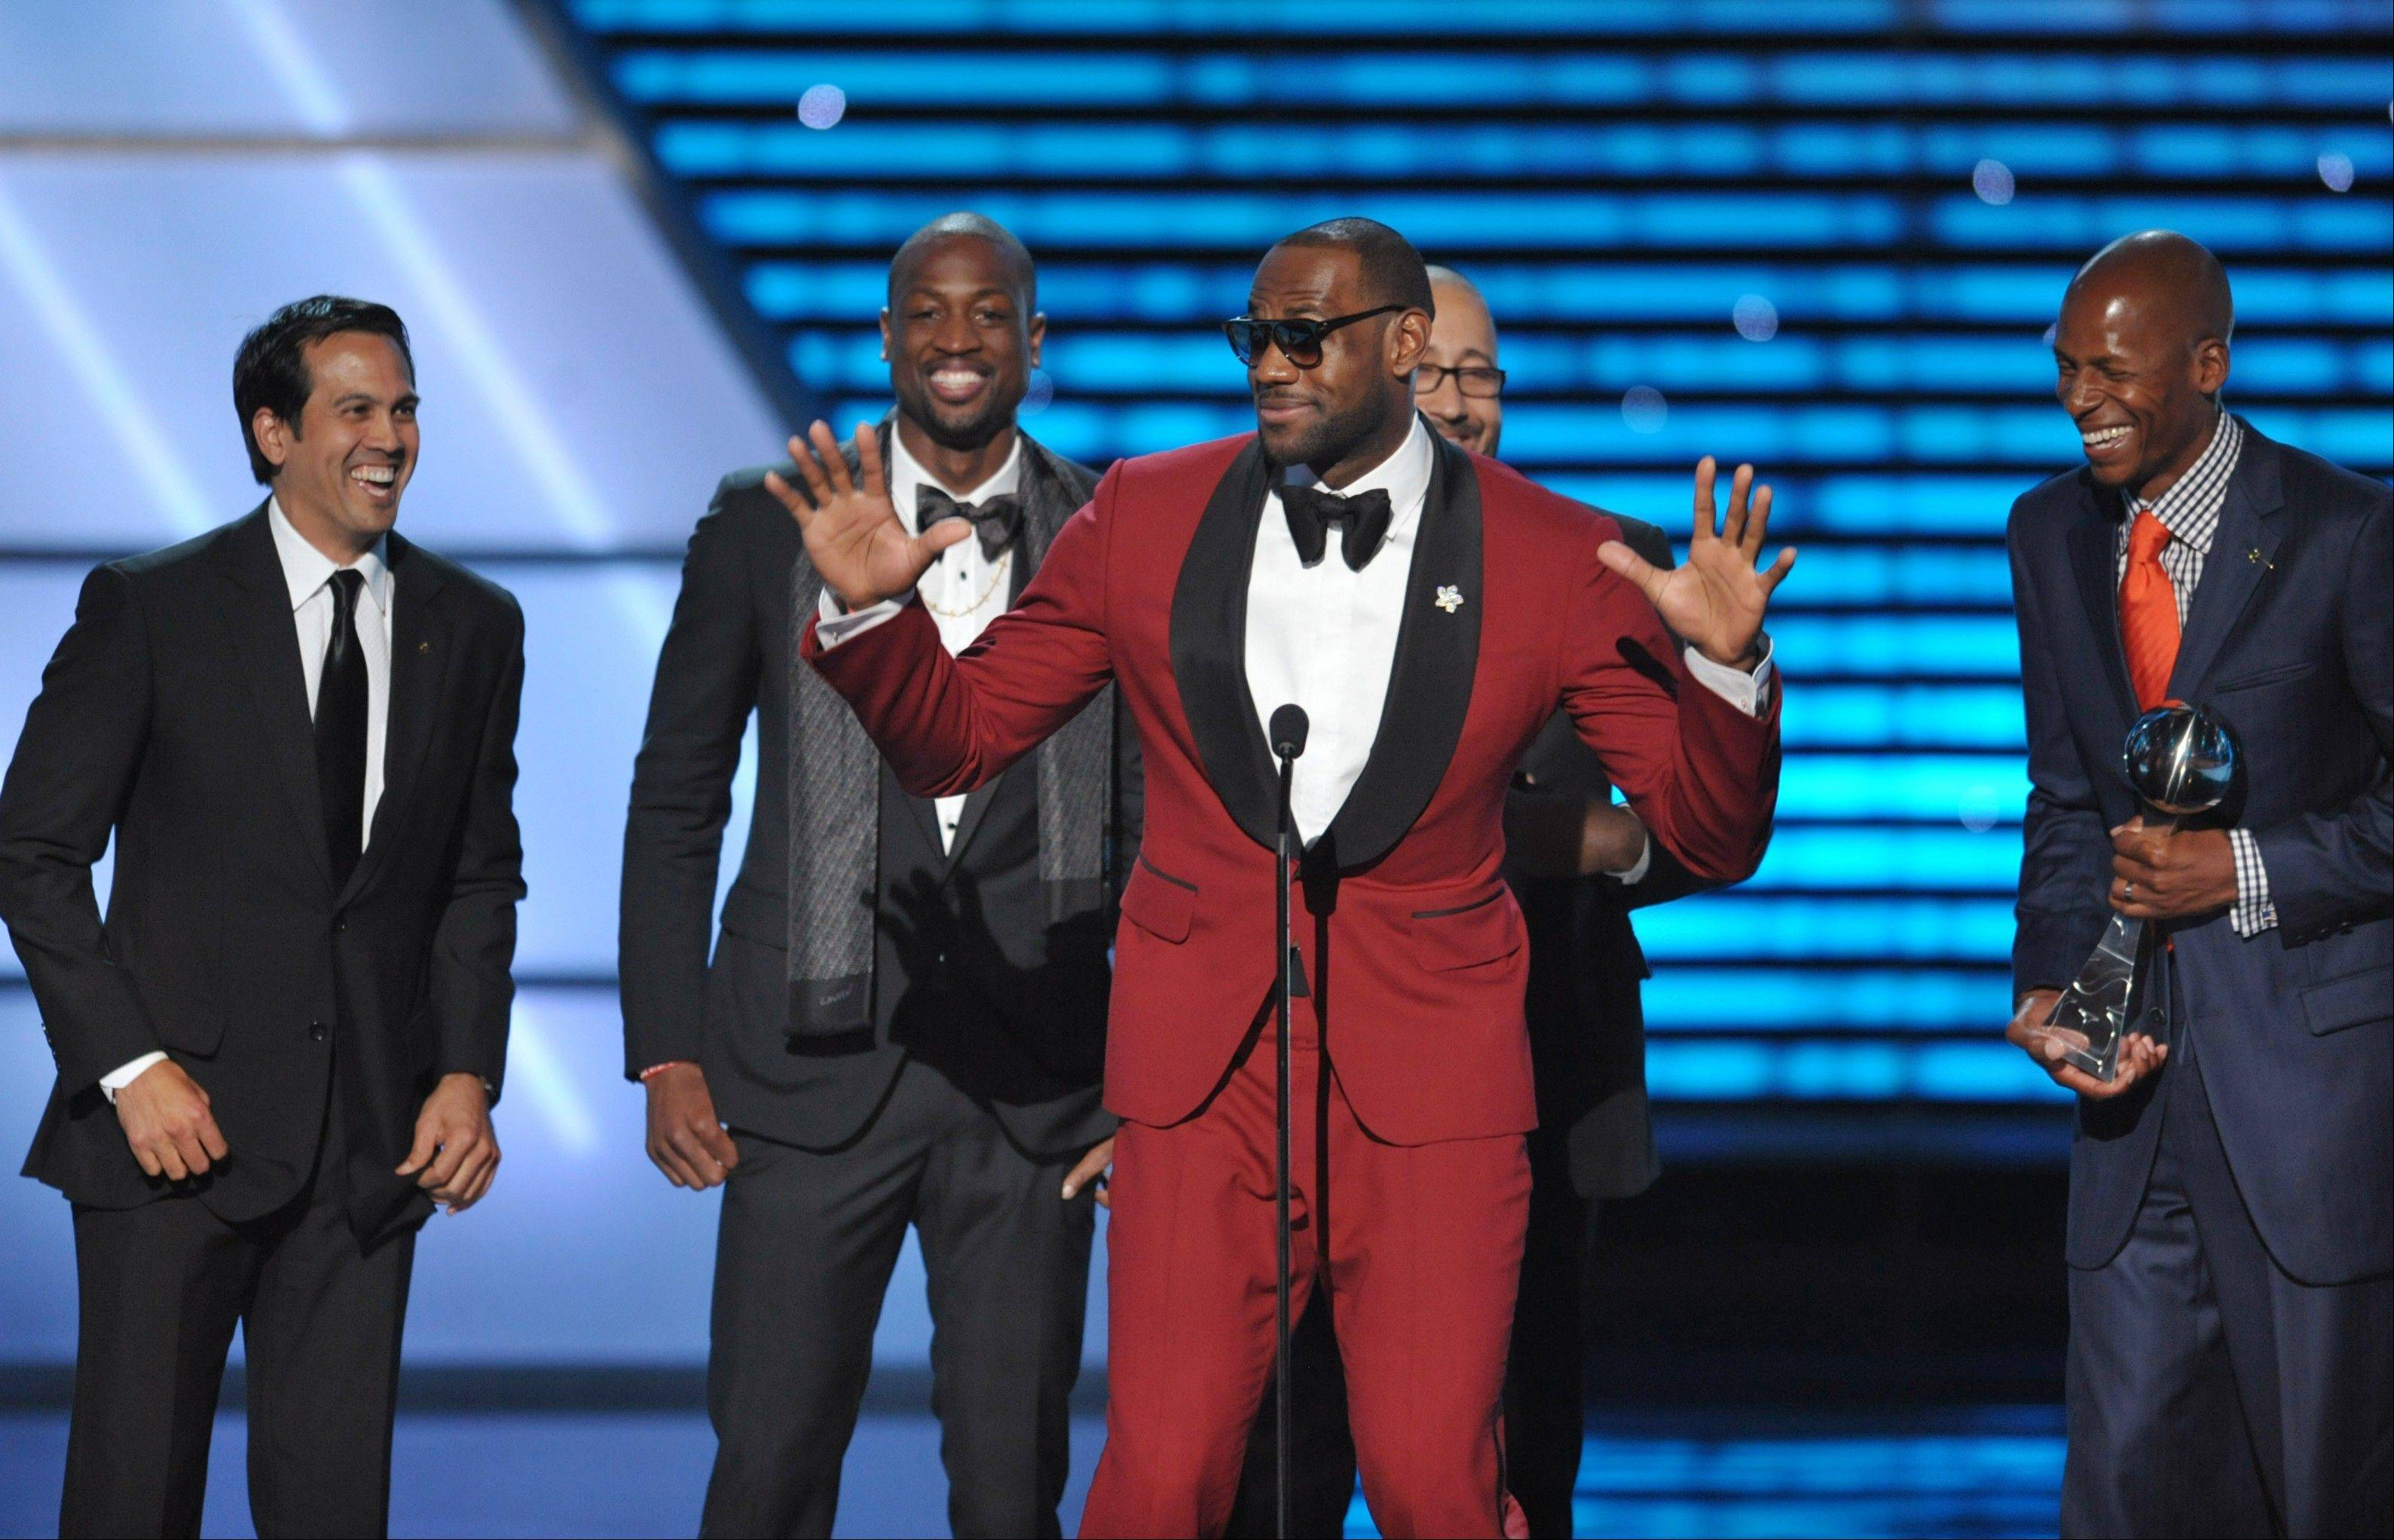 From left, Miami Heat coach Erik Spoelstra and players Dwyane Wade, LeBron James and Ray Allen accept the award for best game at the ESPY Awards Wednesday night at the Nokia Theater in Los Angeles.